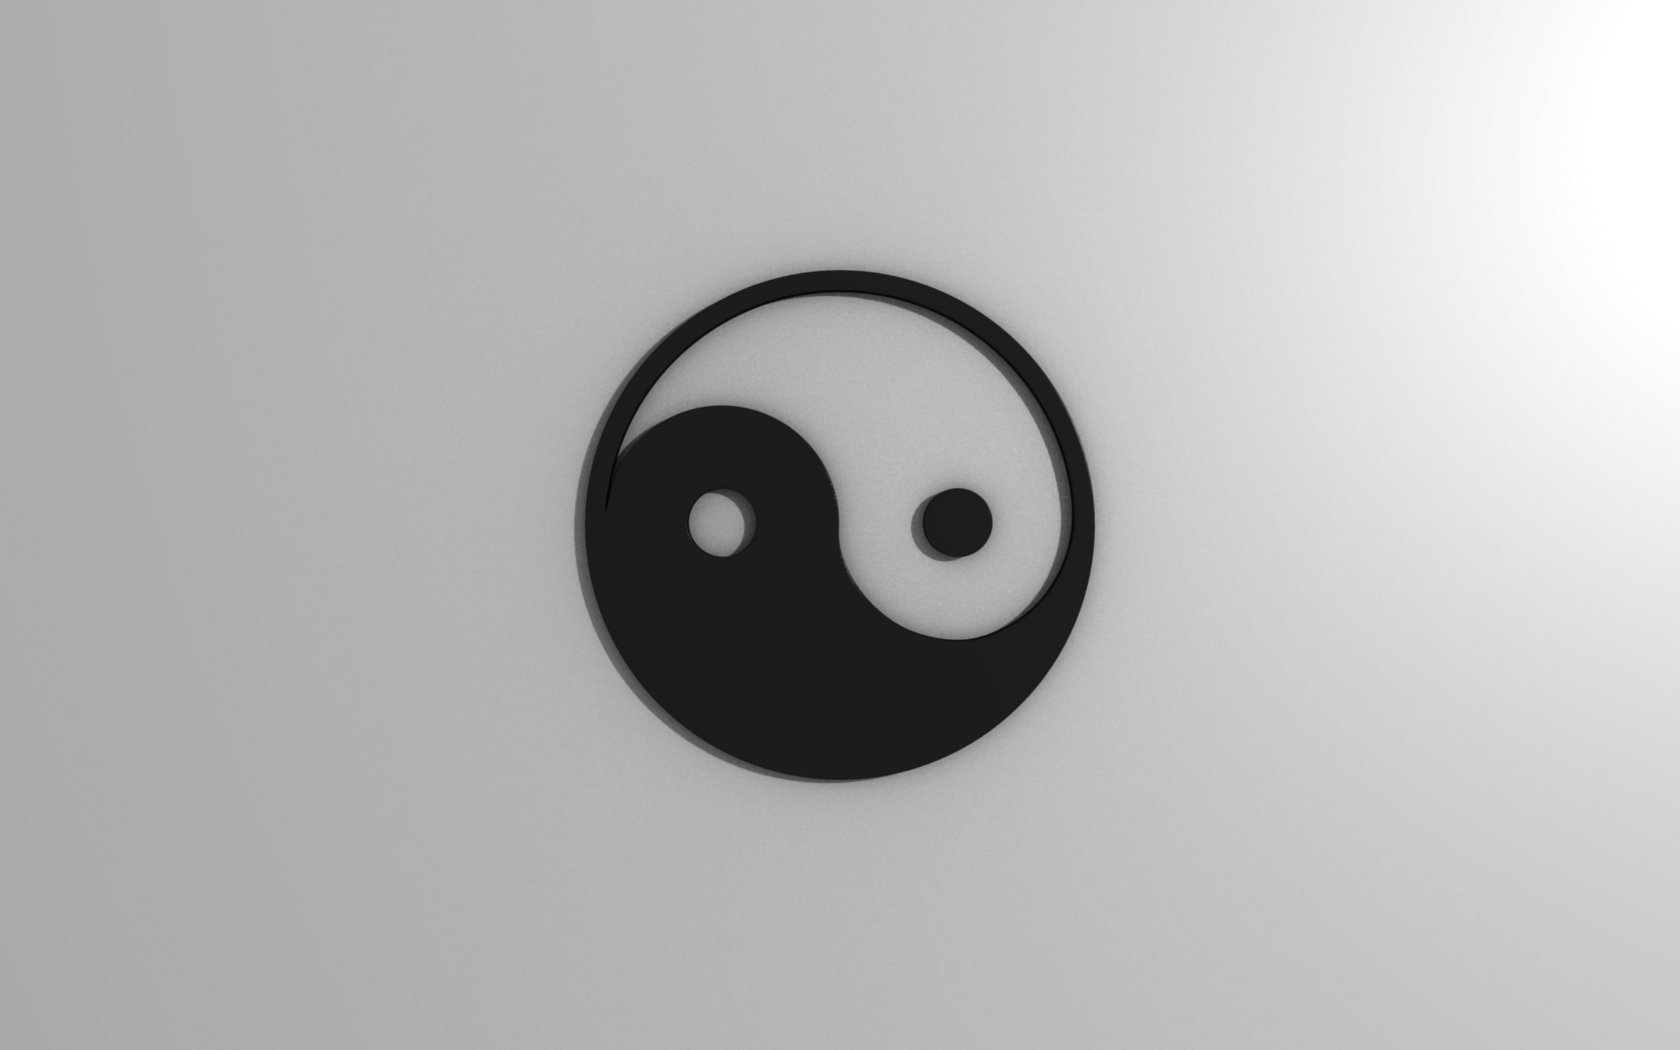 Tumblr iphone wallpaper yin yang - Ying Yang Wallpaper By Corpseart On Deviantart